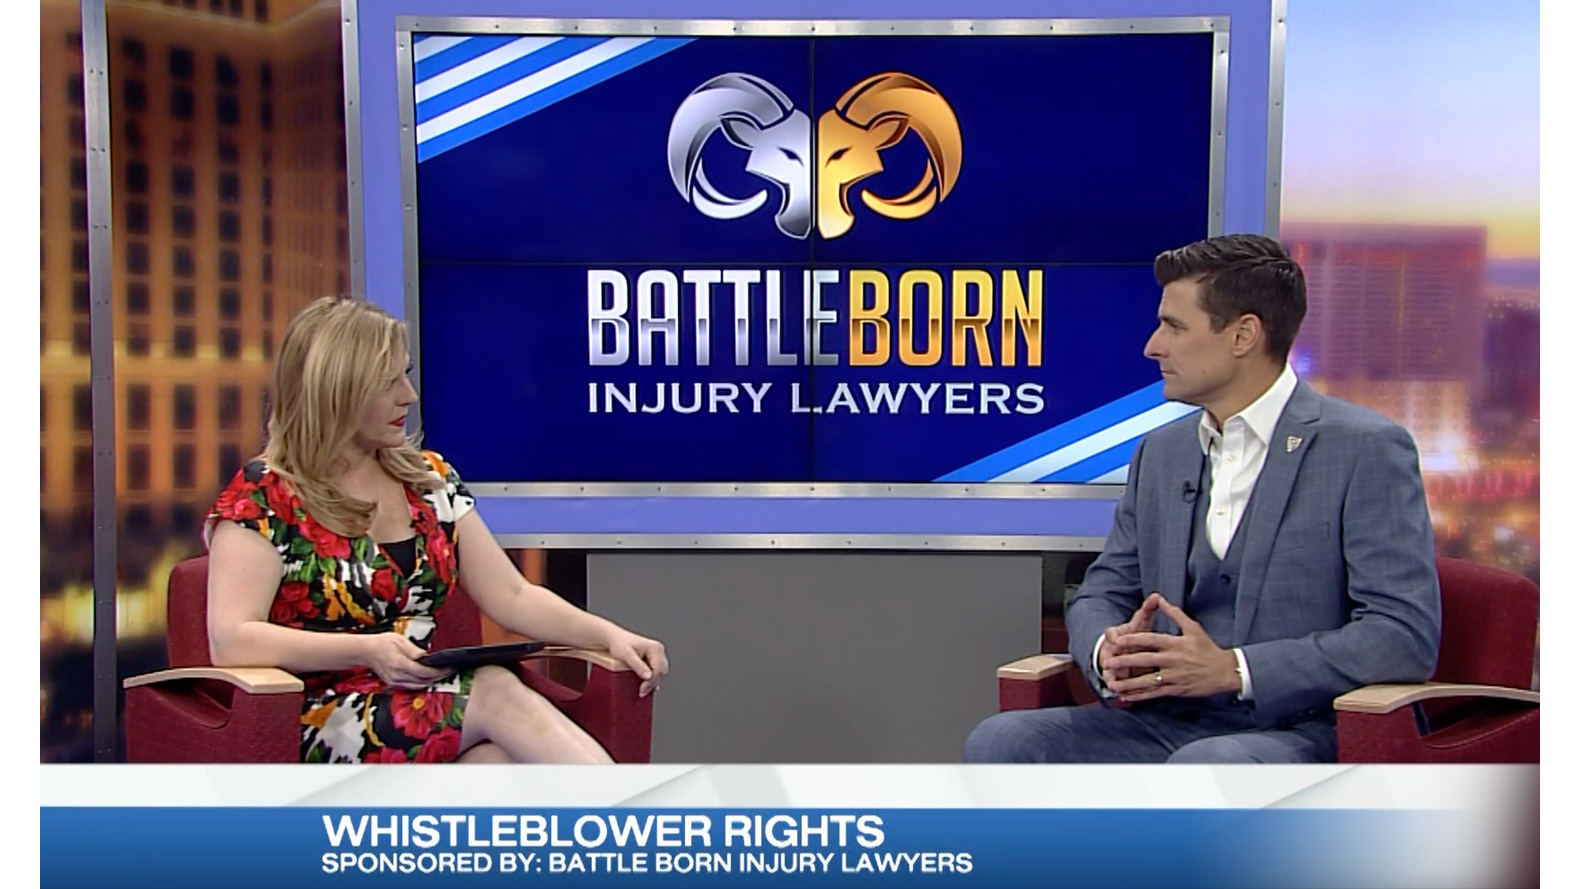 Whistleblower rights with Battle Born Injury Lawyers